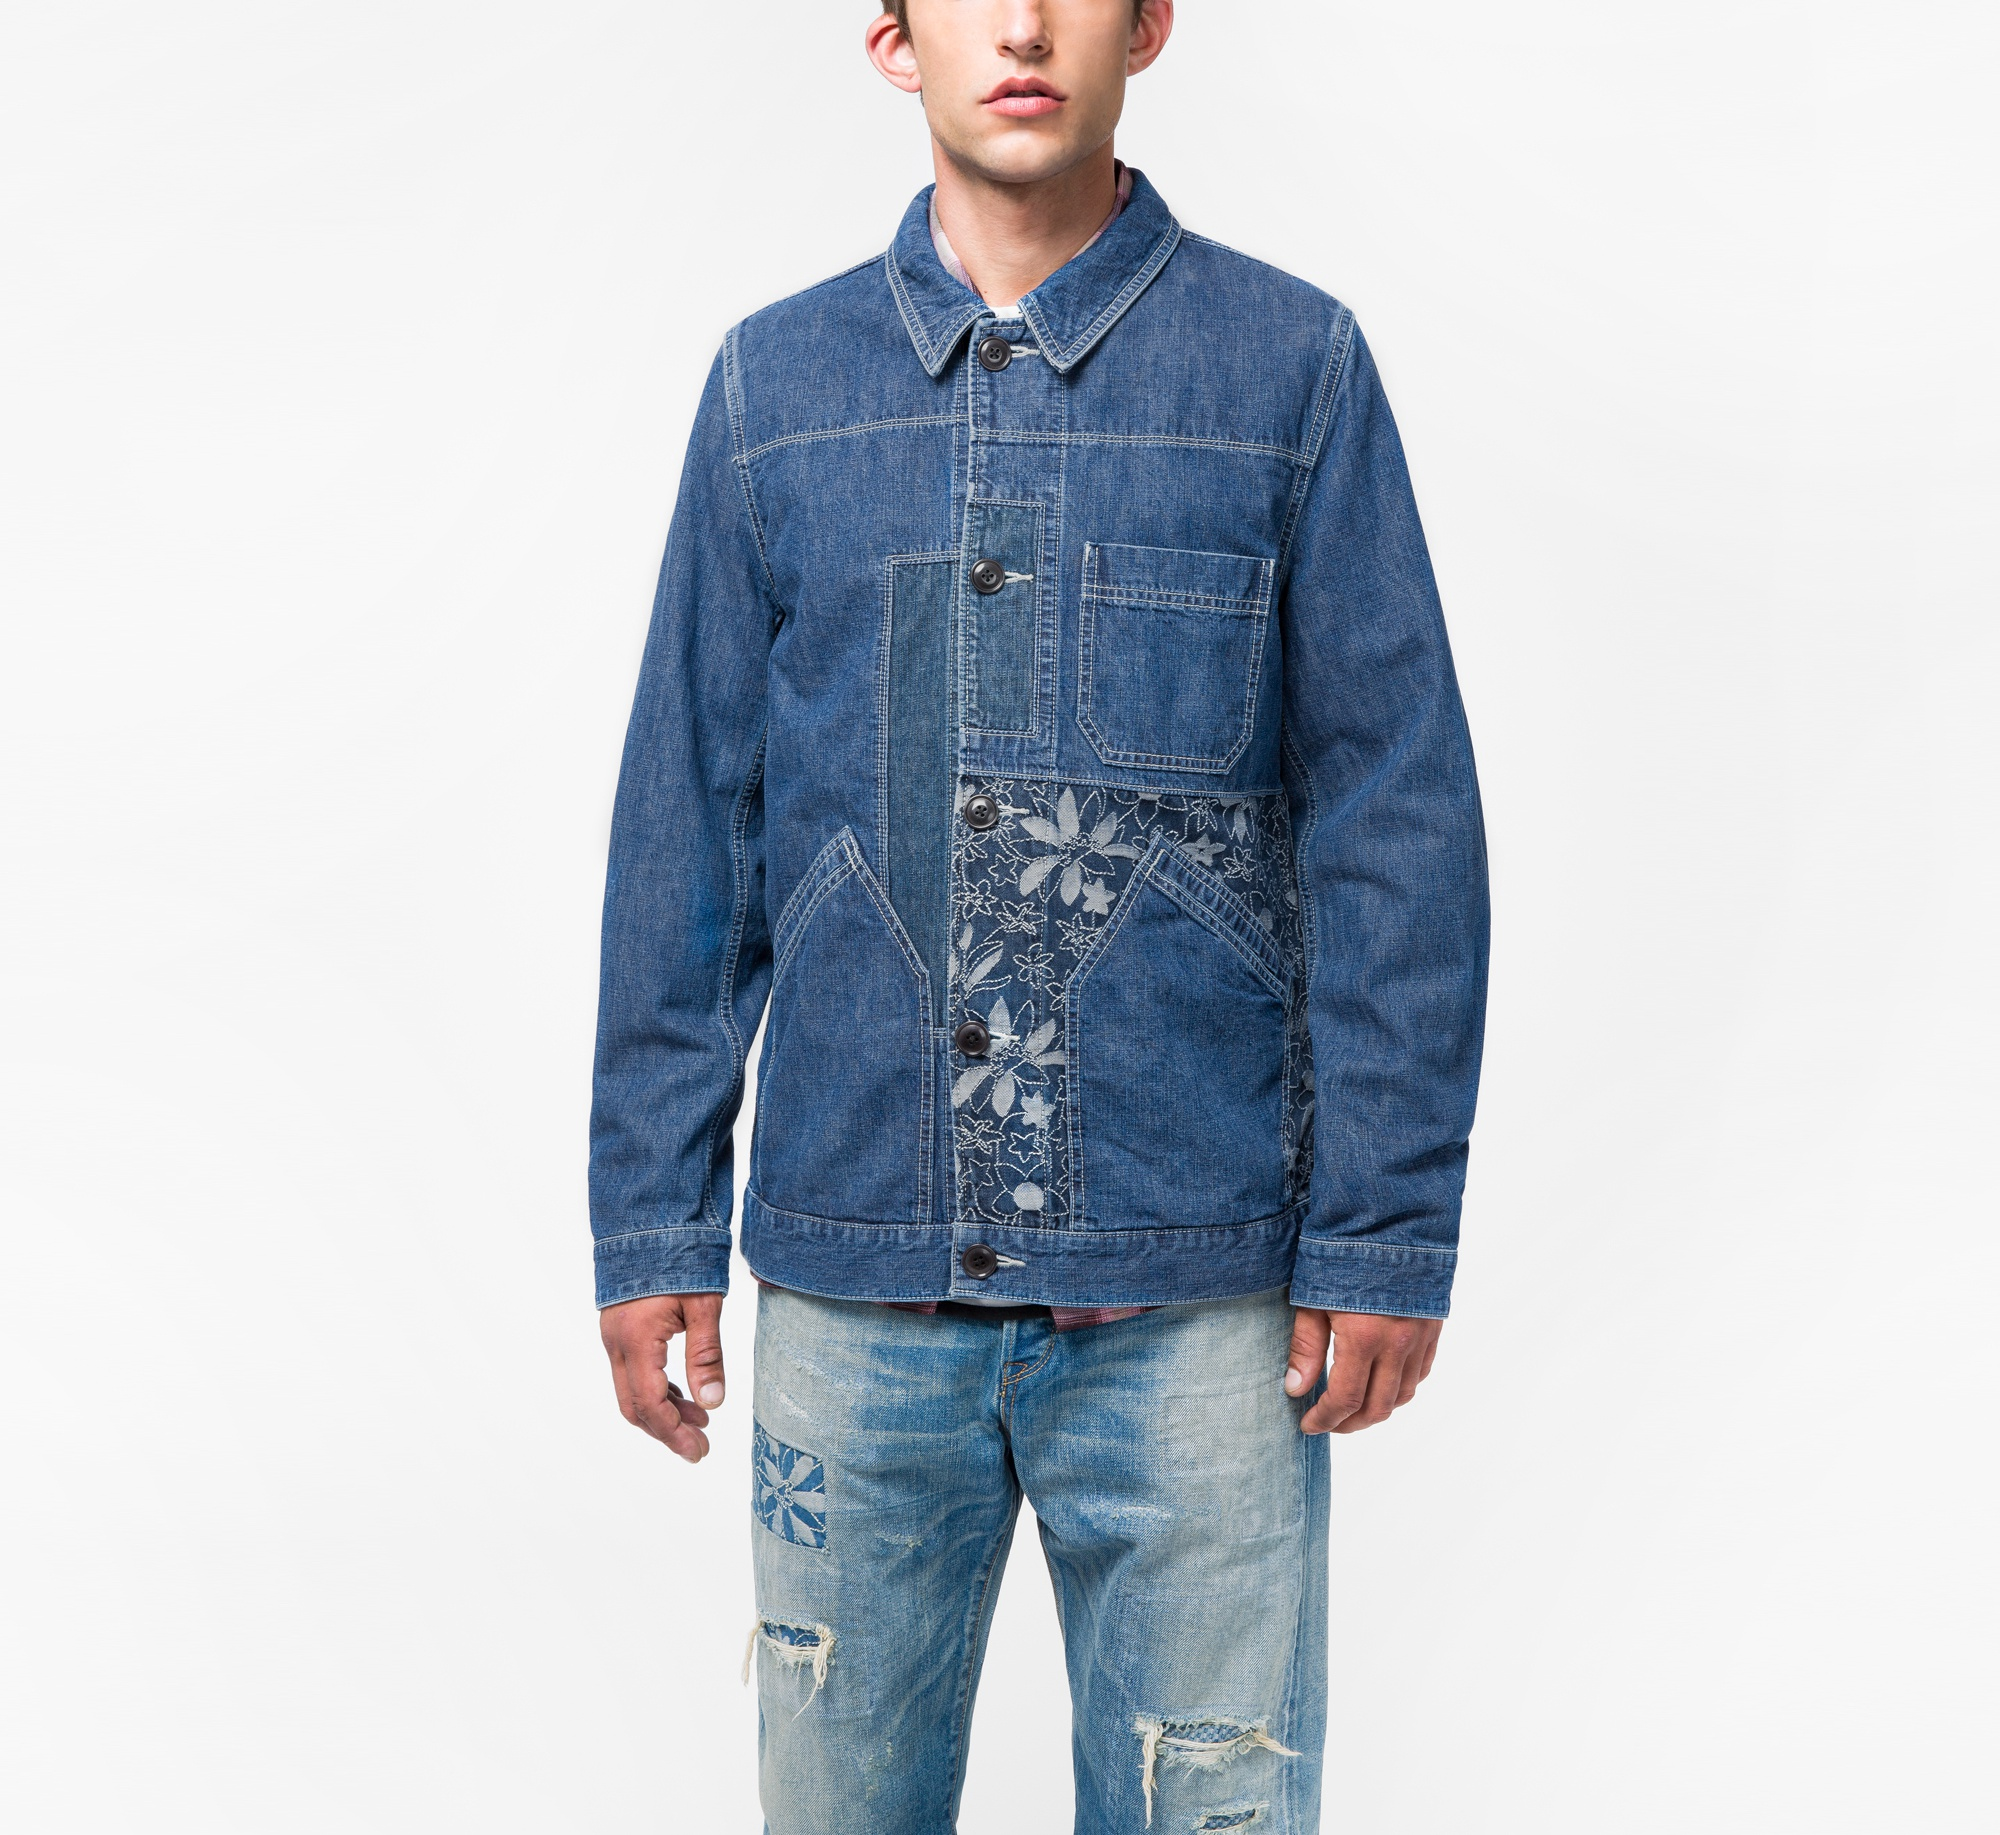 Paul Smith Men's Denim Red Ear Chore Jacket With Embroidered Patches